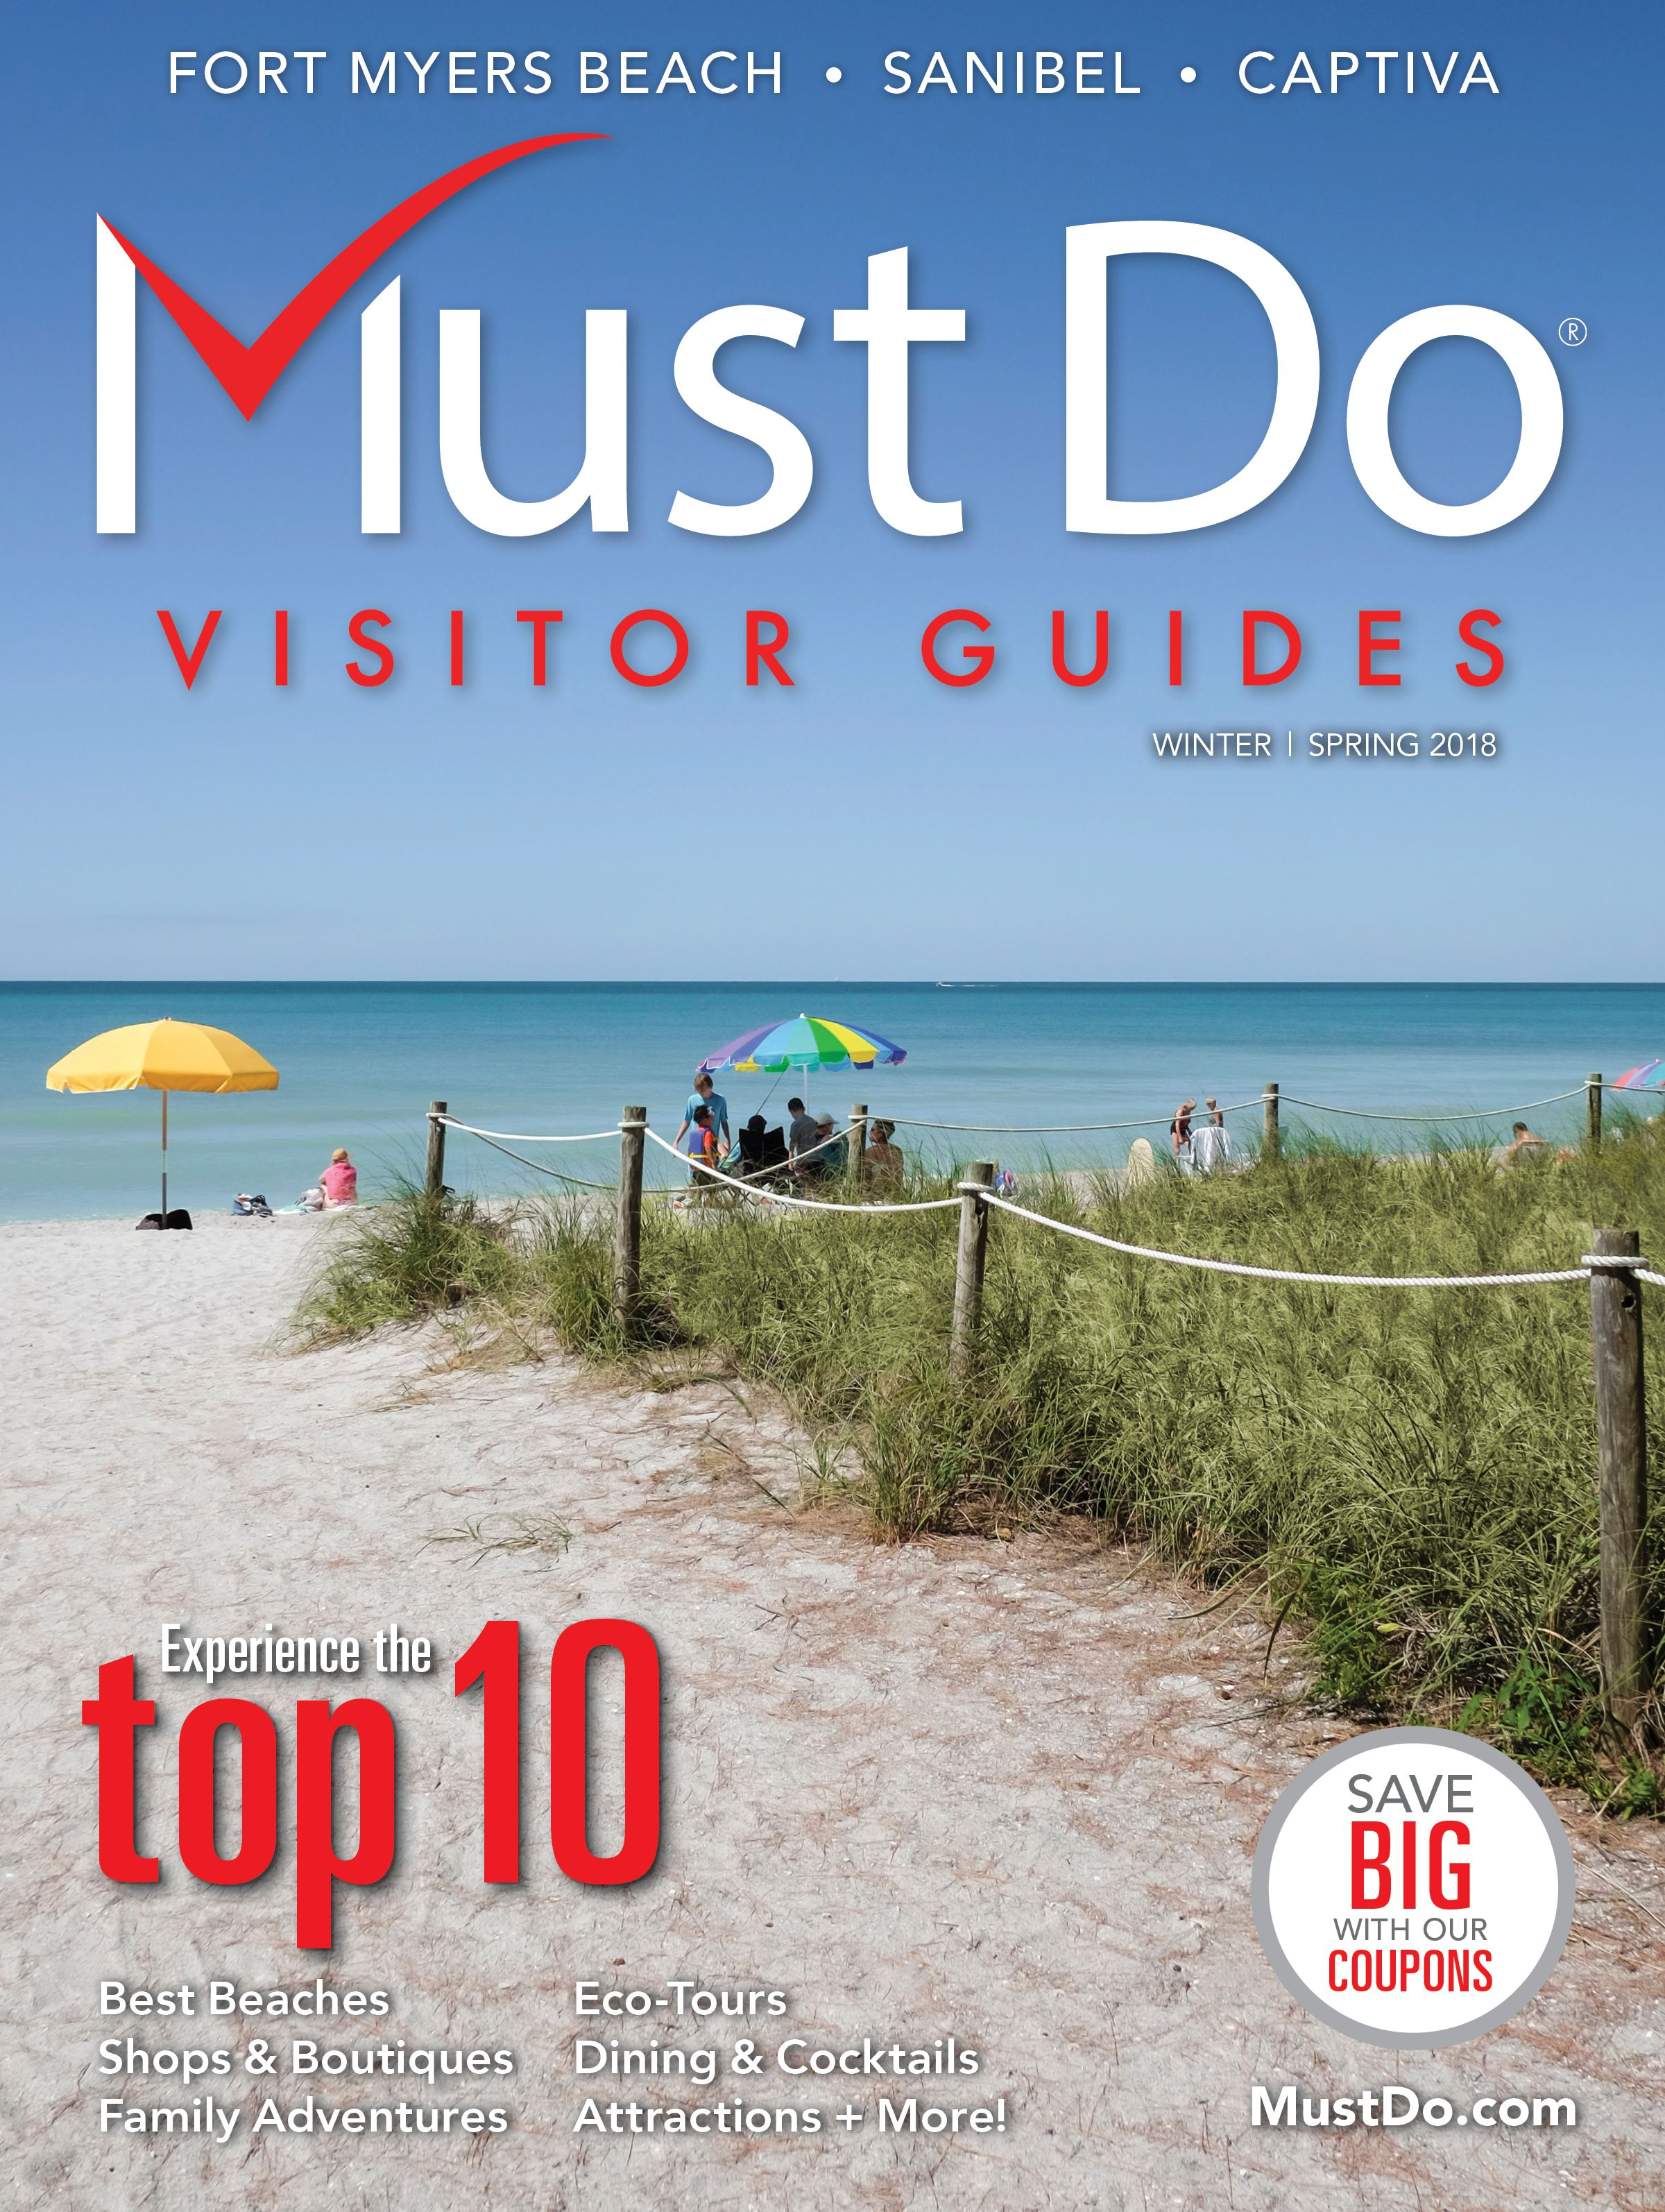 Must Do Visitor Guide Digital Editions Fort Myers